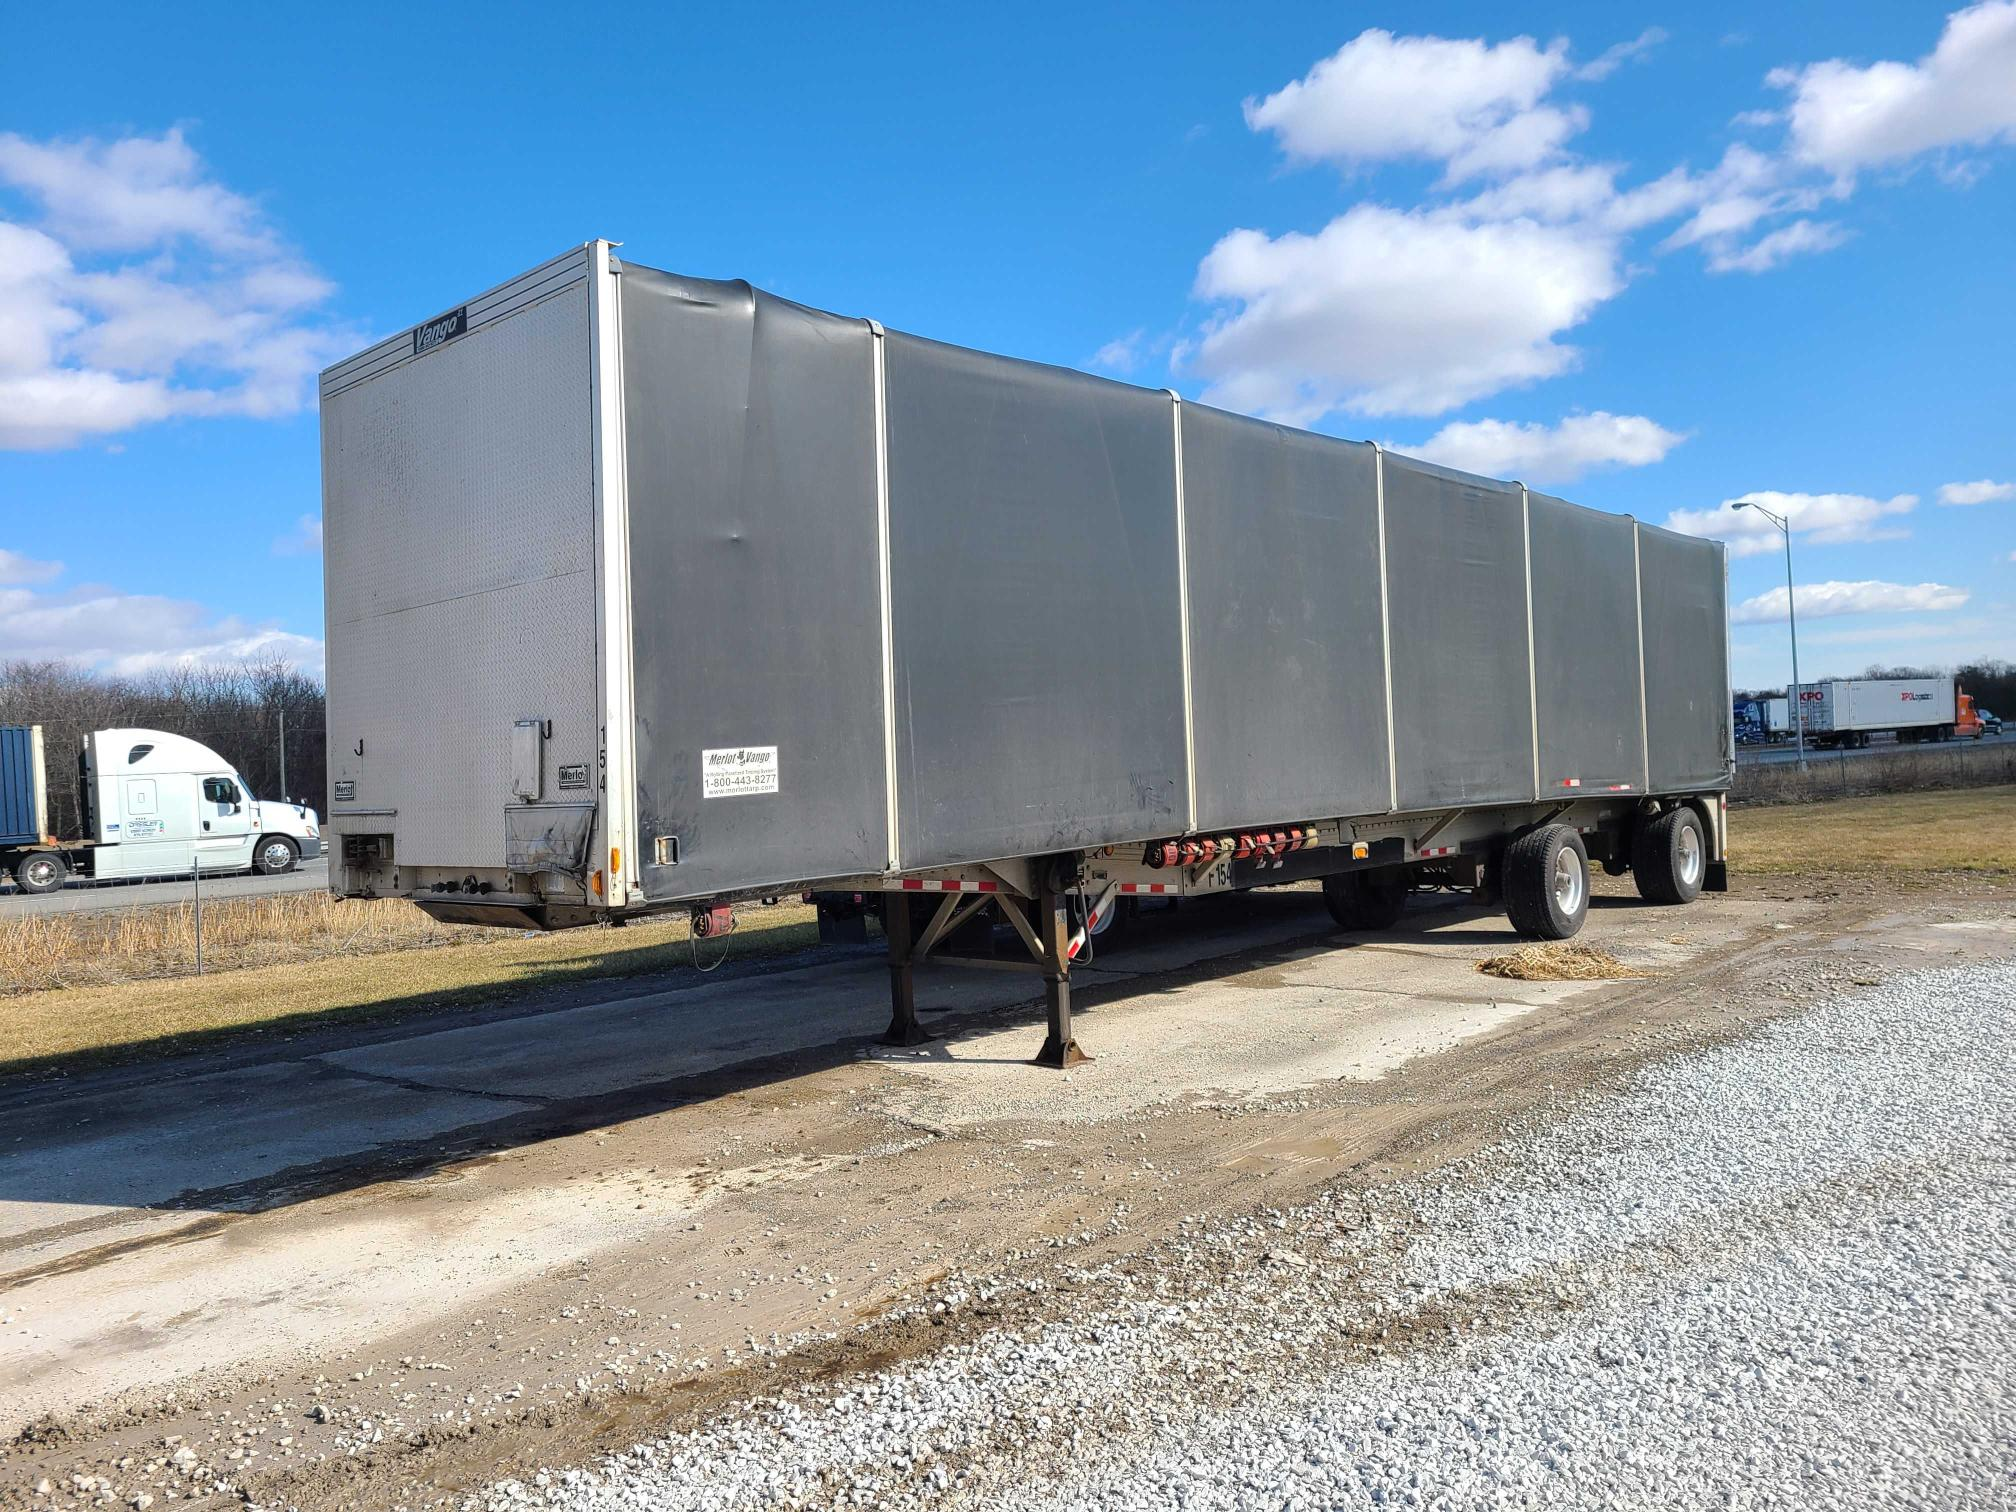 Reitnouer Trailer salvage cars for sale: 2003 Reitnouer Trailer